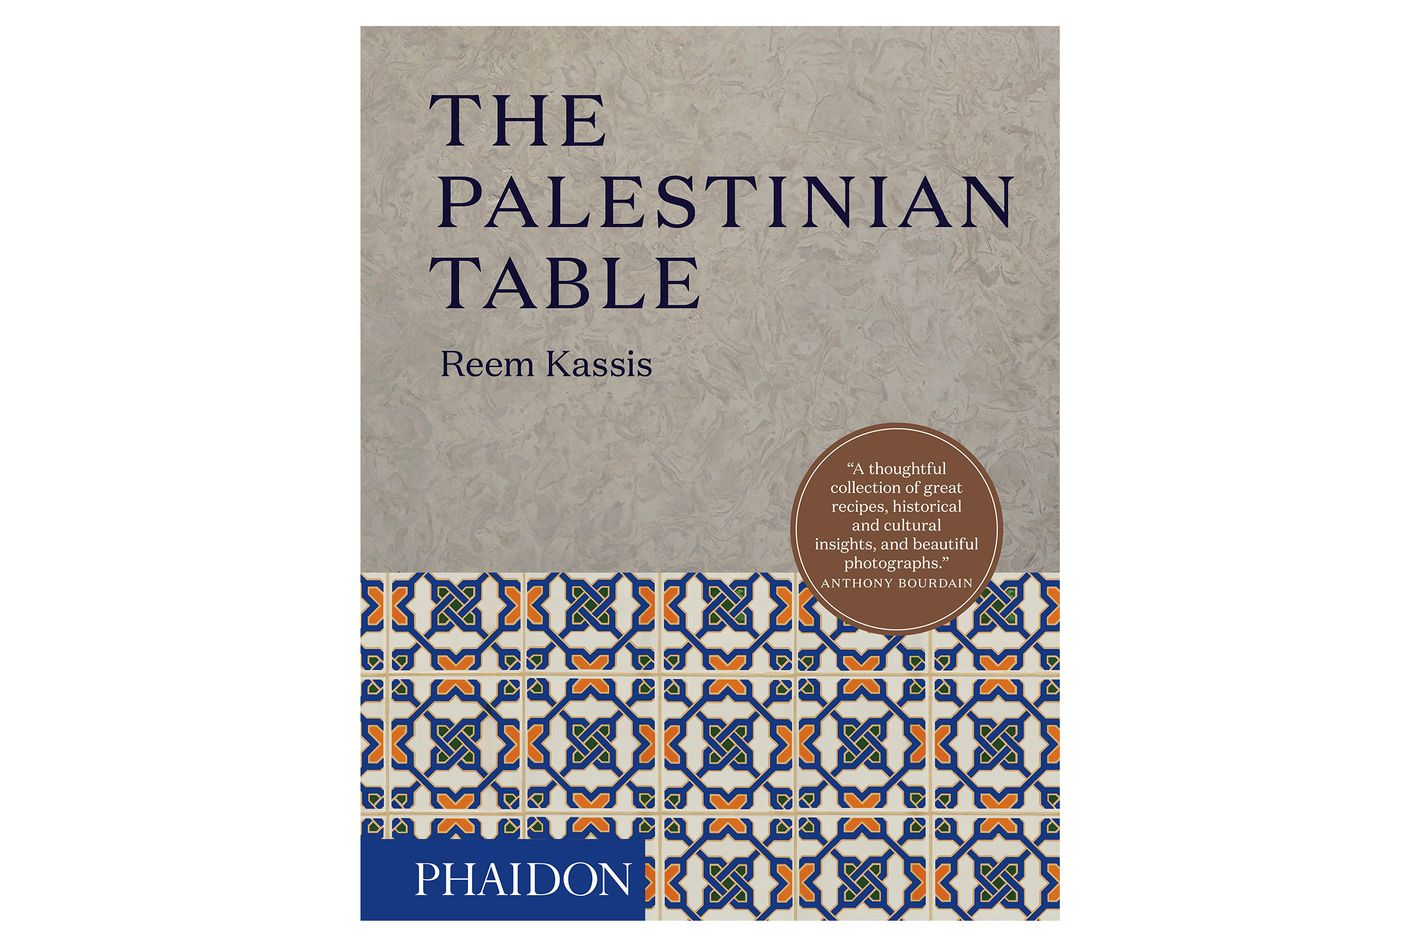 'The Palestinian Table,' by Reem Kassis